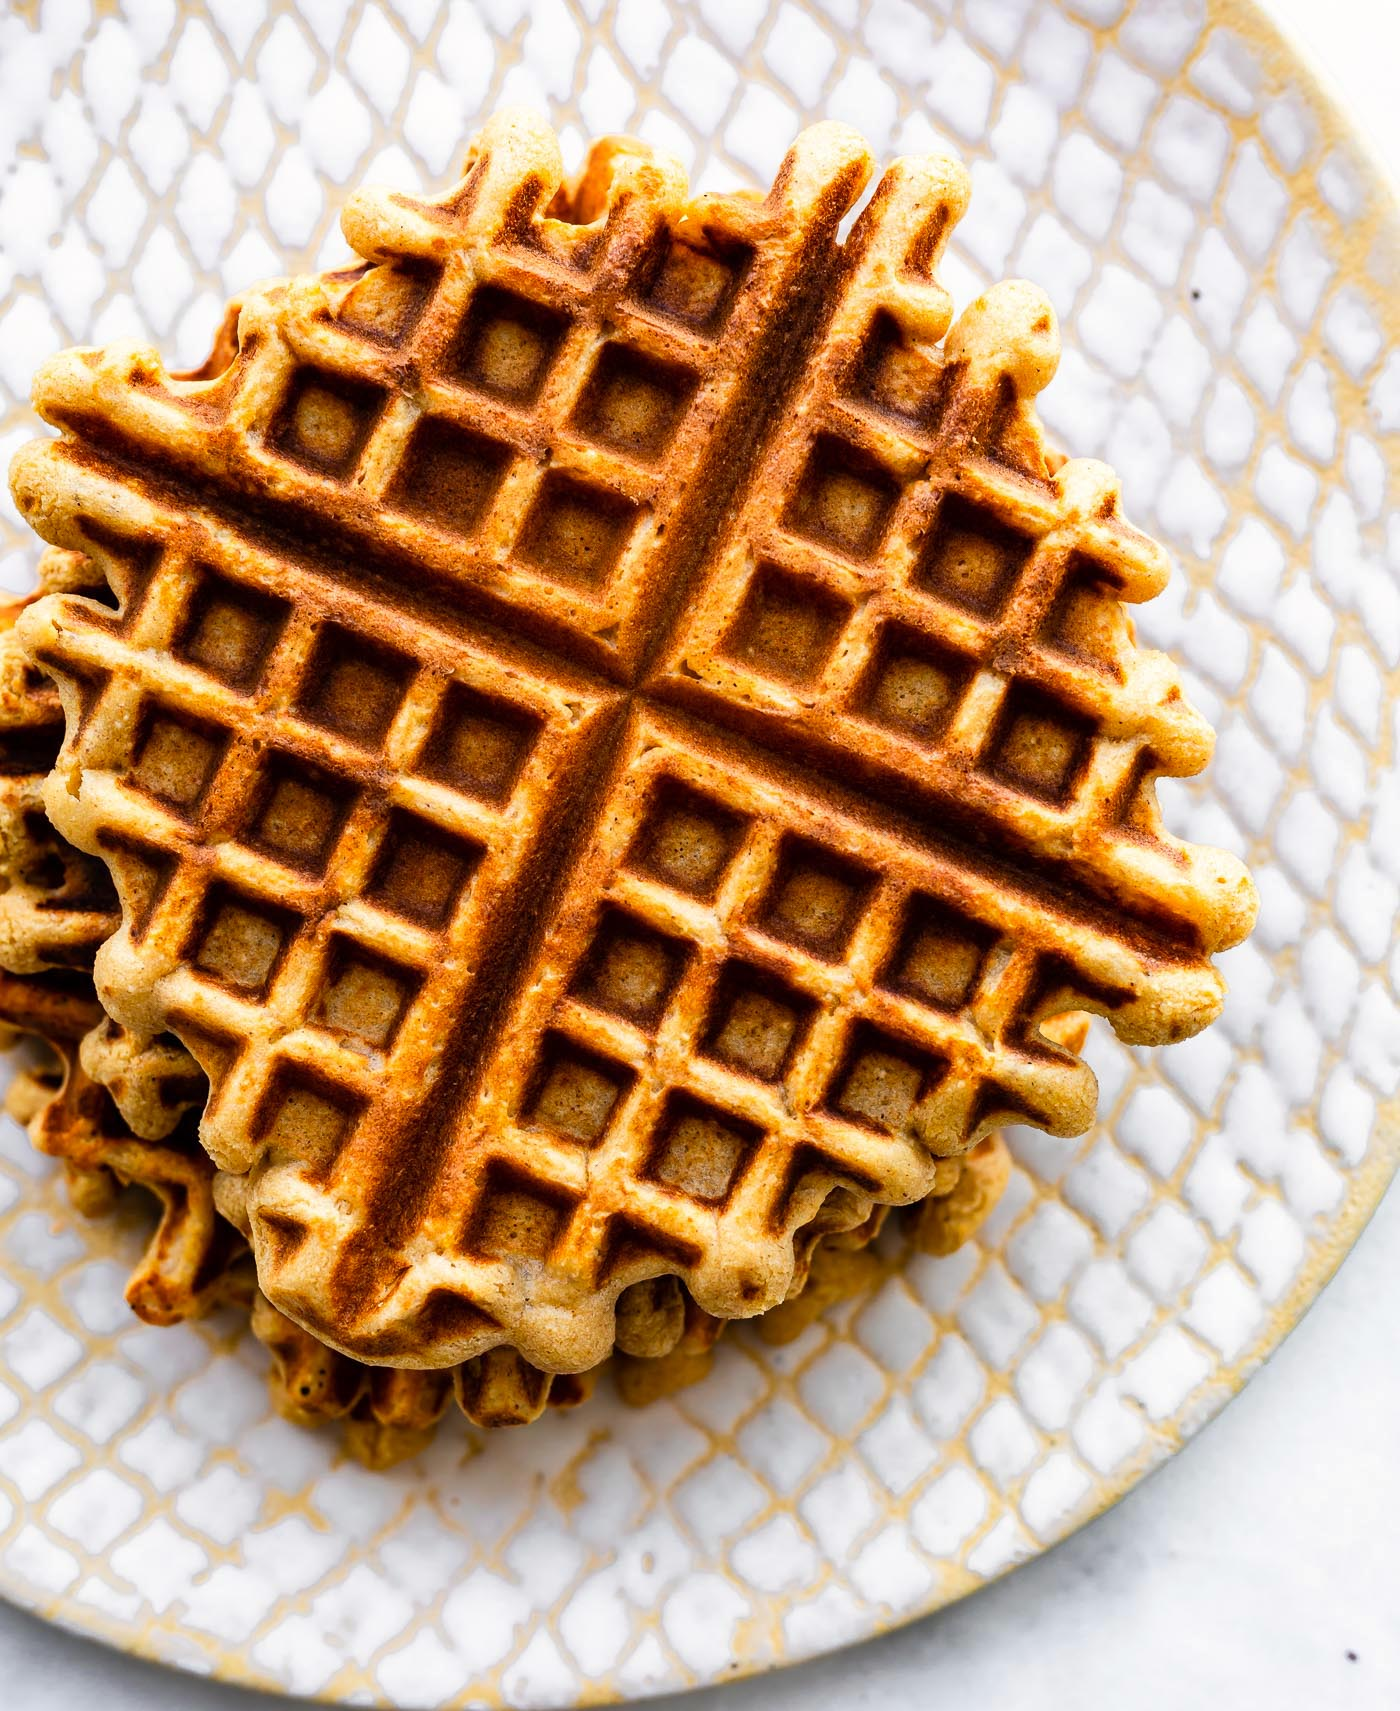 Overhead image of peanut butter waffles on a plate.